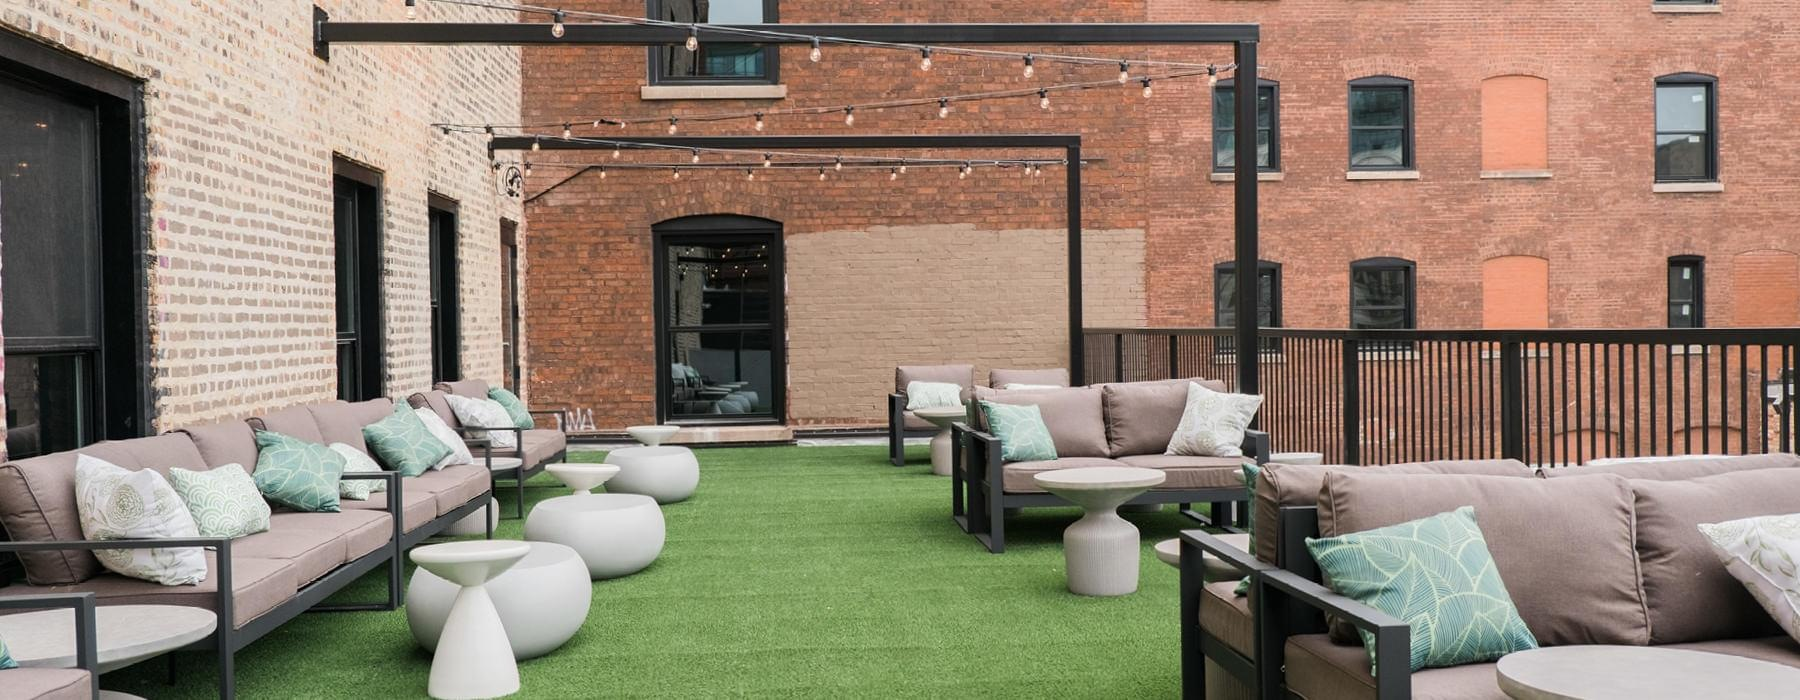 Roof Deck and Terrace with Lounge Seating